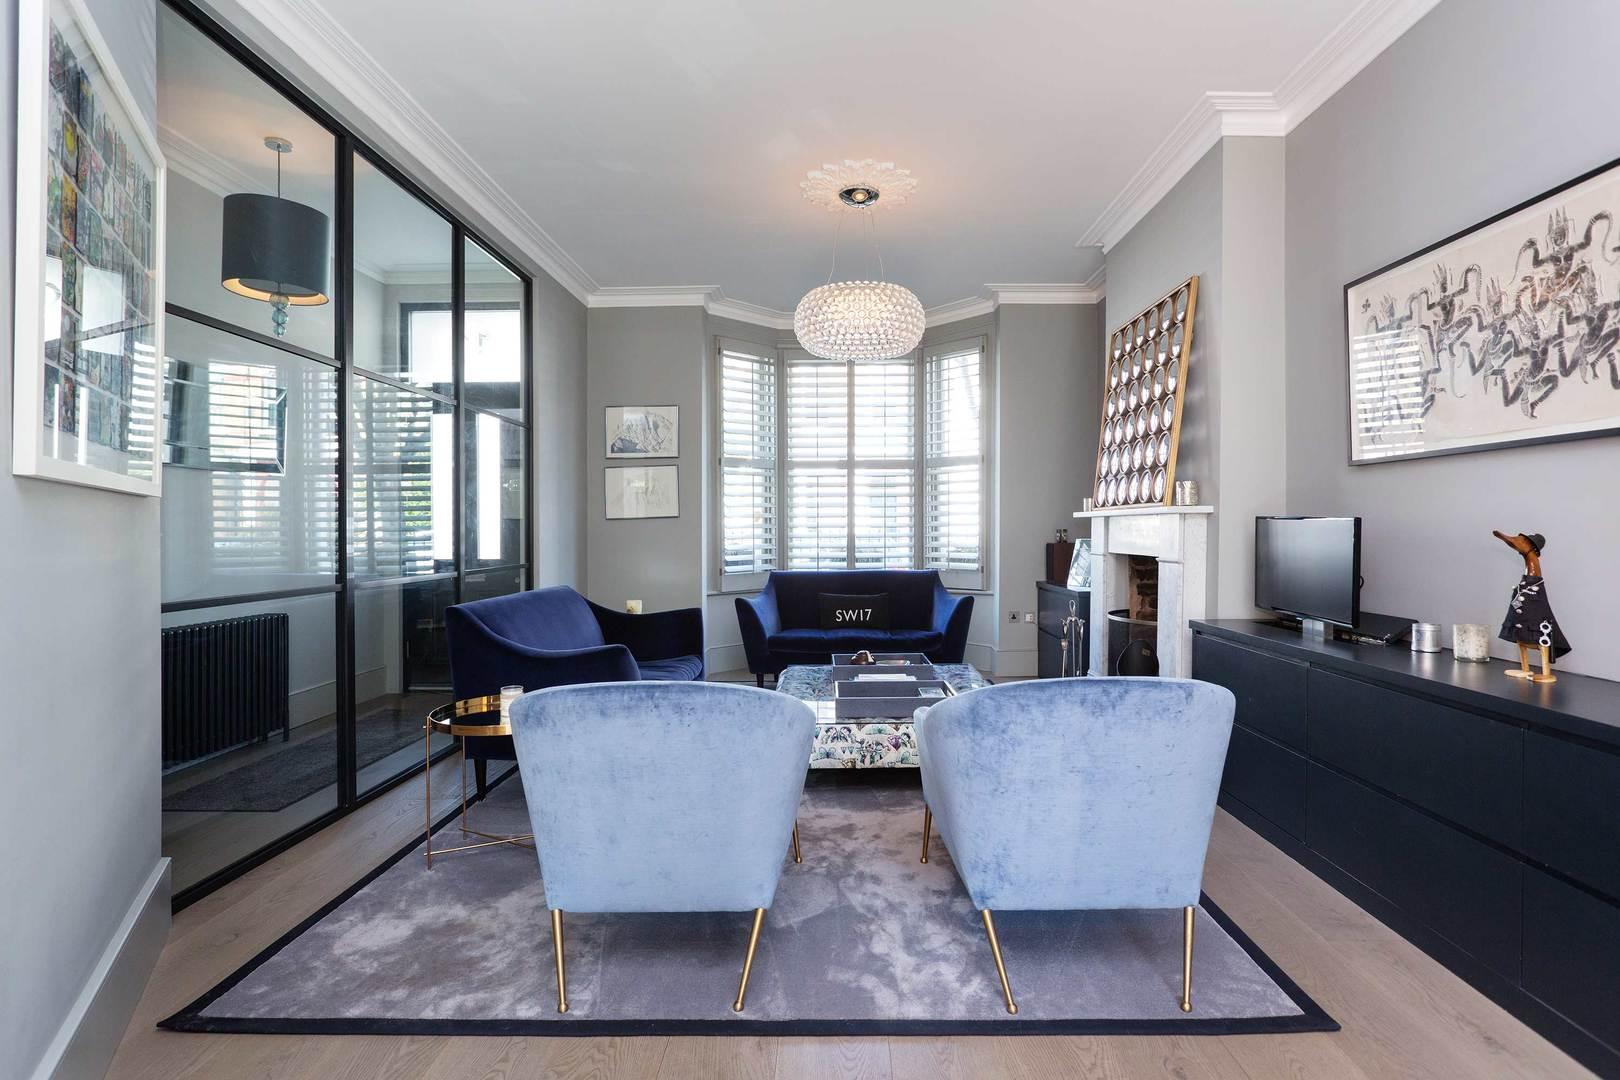 Property Image 1 - Stylish Modern Balham House with Private Garden